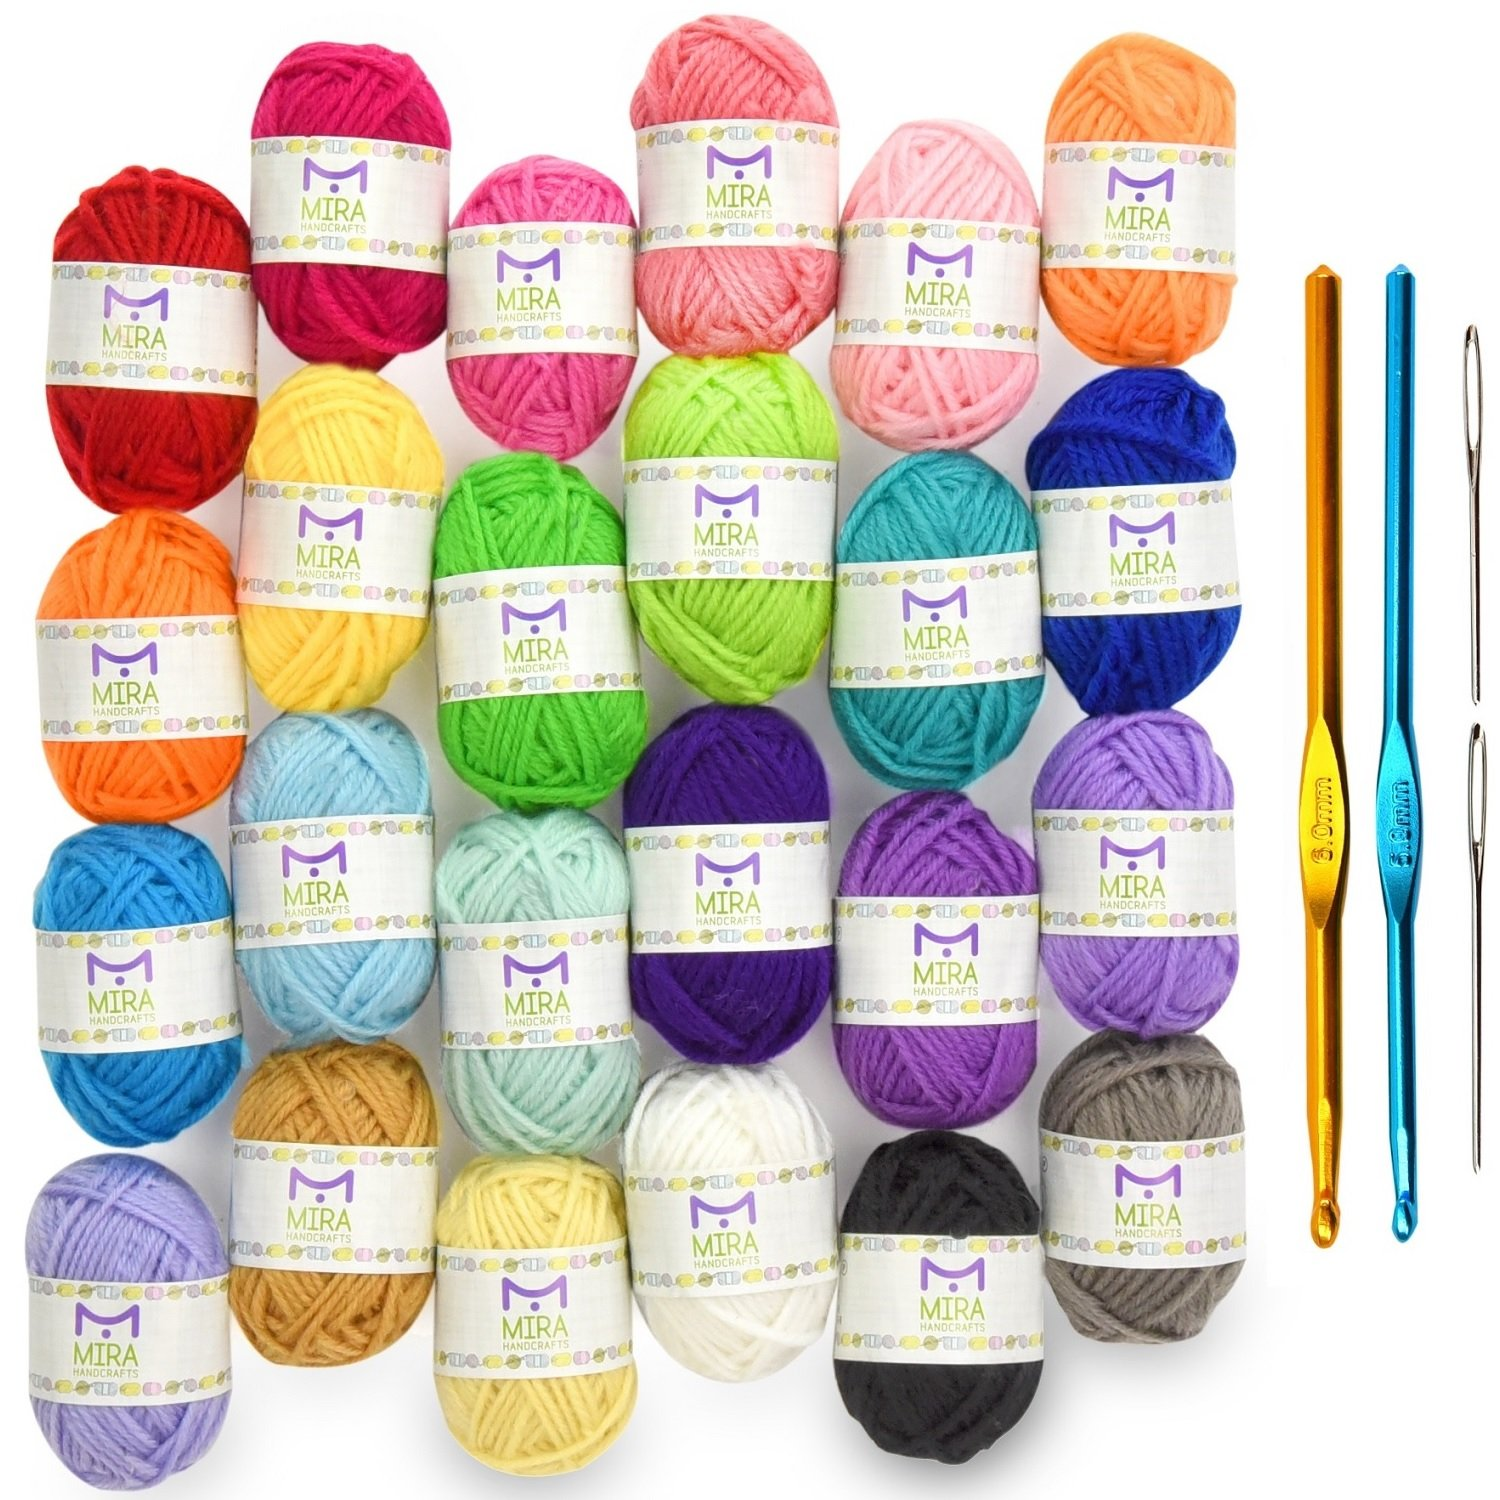 Mira Handcrafts 24 Acrylic Yarn Bonbons | Total of 525 yards Craft Yarn for Knitting and Crochet | Includes 2 Crochet Hooks, 2 Weaving Needles, 7 E-books | DK Yarn | Perfect Beginner Kit MiraGoods 4336926359